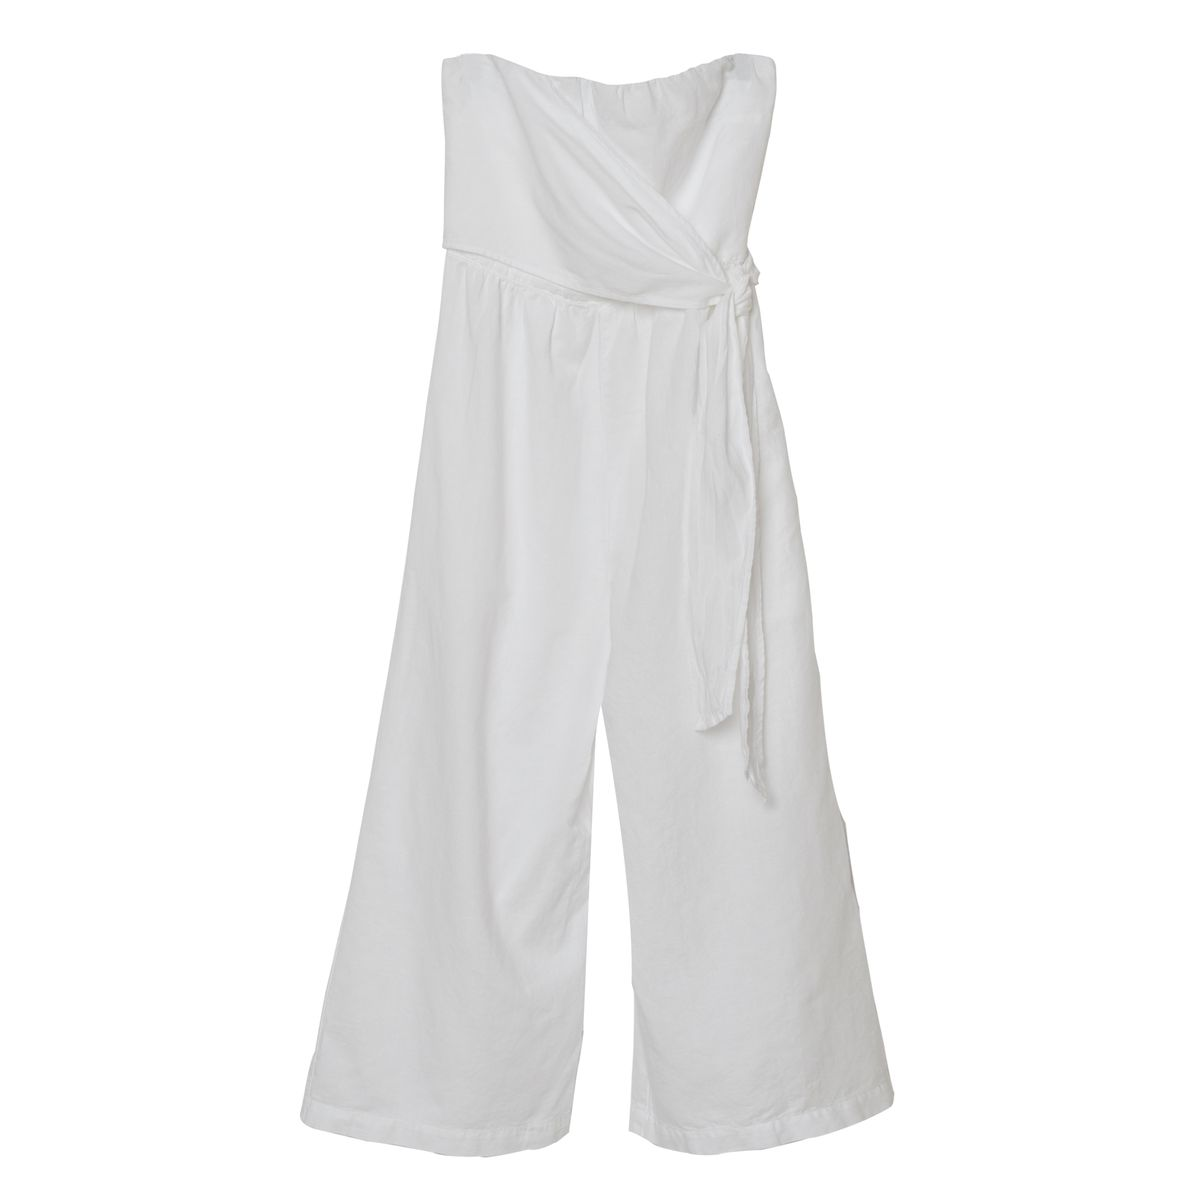 A white strapless jumpsuit